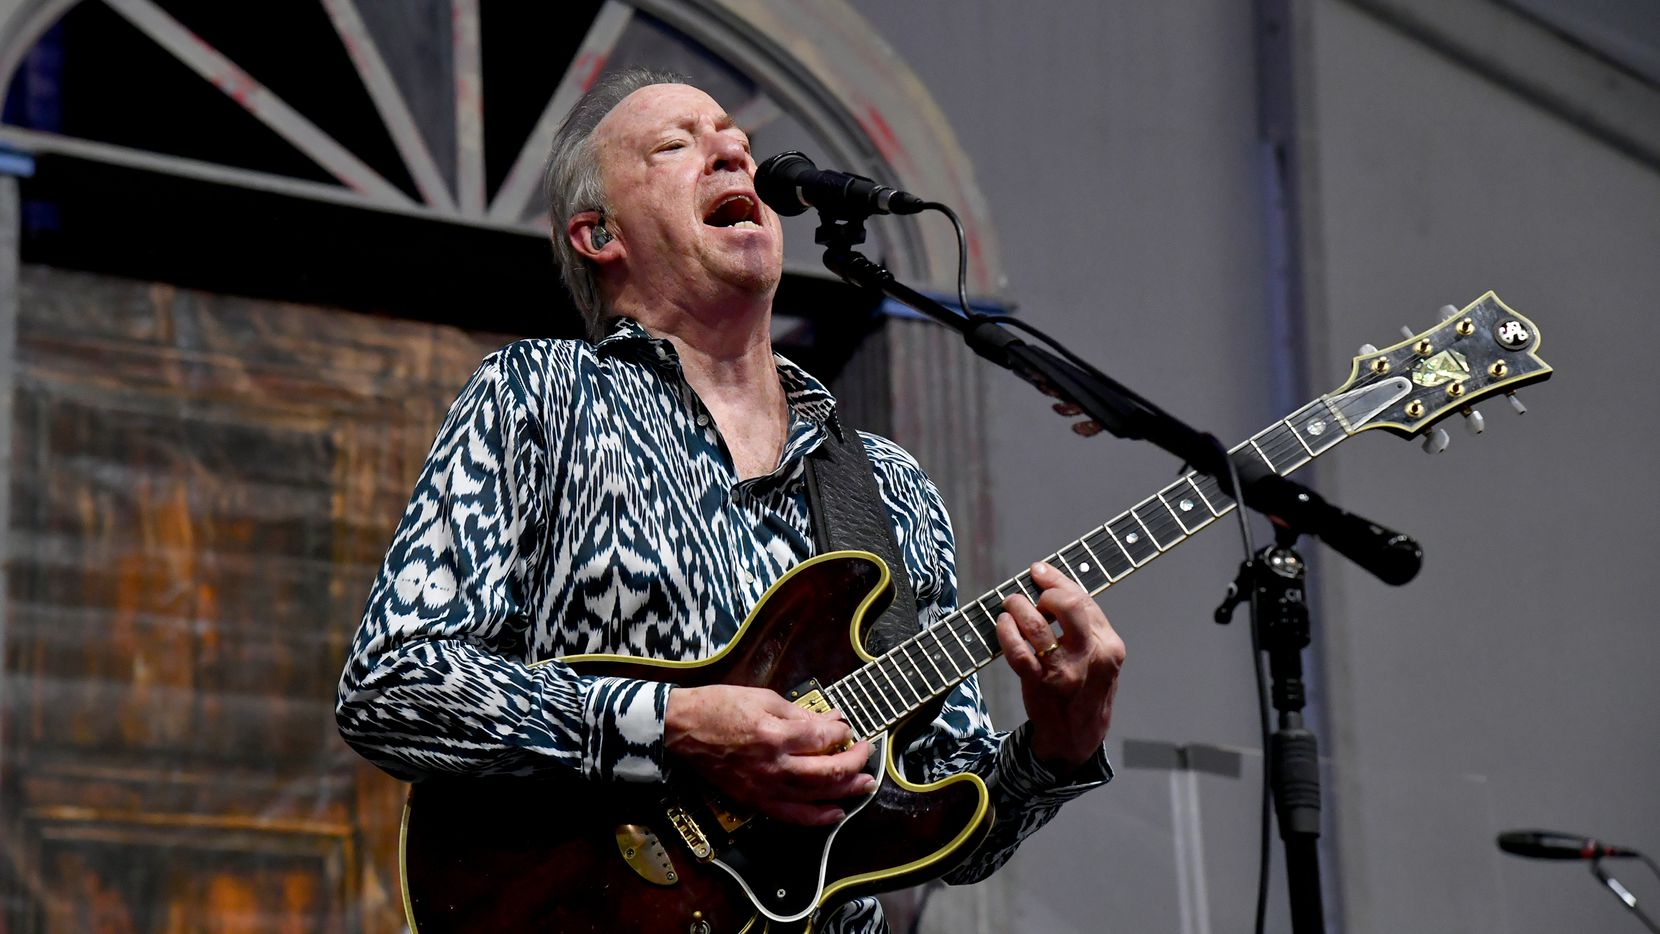 NEW ORLEANS, LA - APRIL 27:  Boz Scaggs performs during the New Orleans Jazz and Heritage Festival 2019 50th Anniversary at Fair Grounds Race Course on April 27, 2019 in New Orleans, Louisiana. (Photo by Jeff Kravitz/FilmMagic)